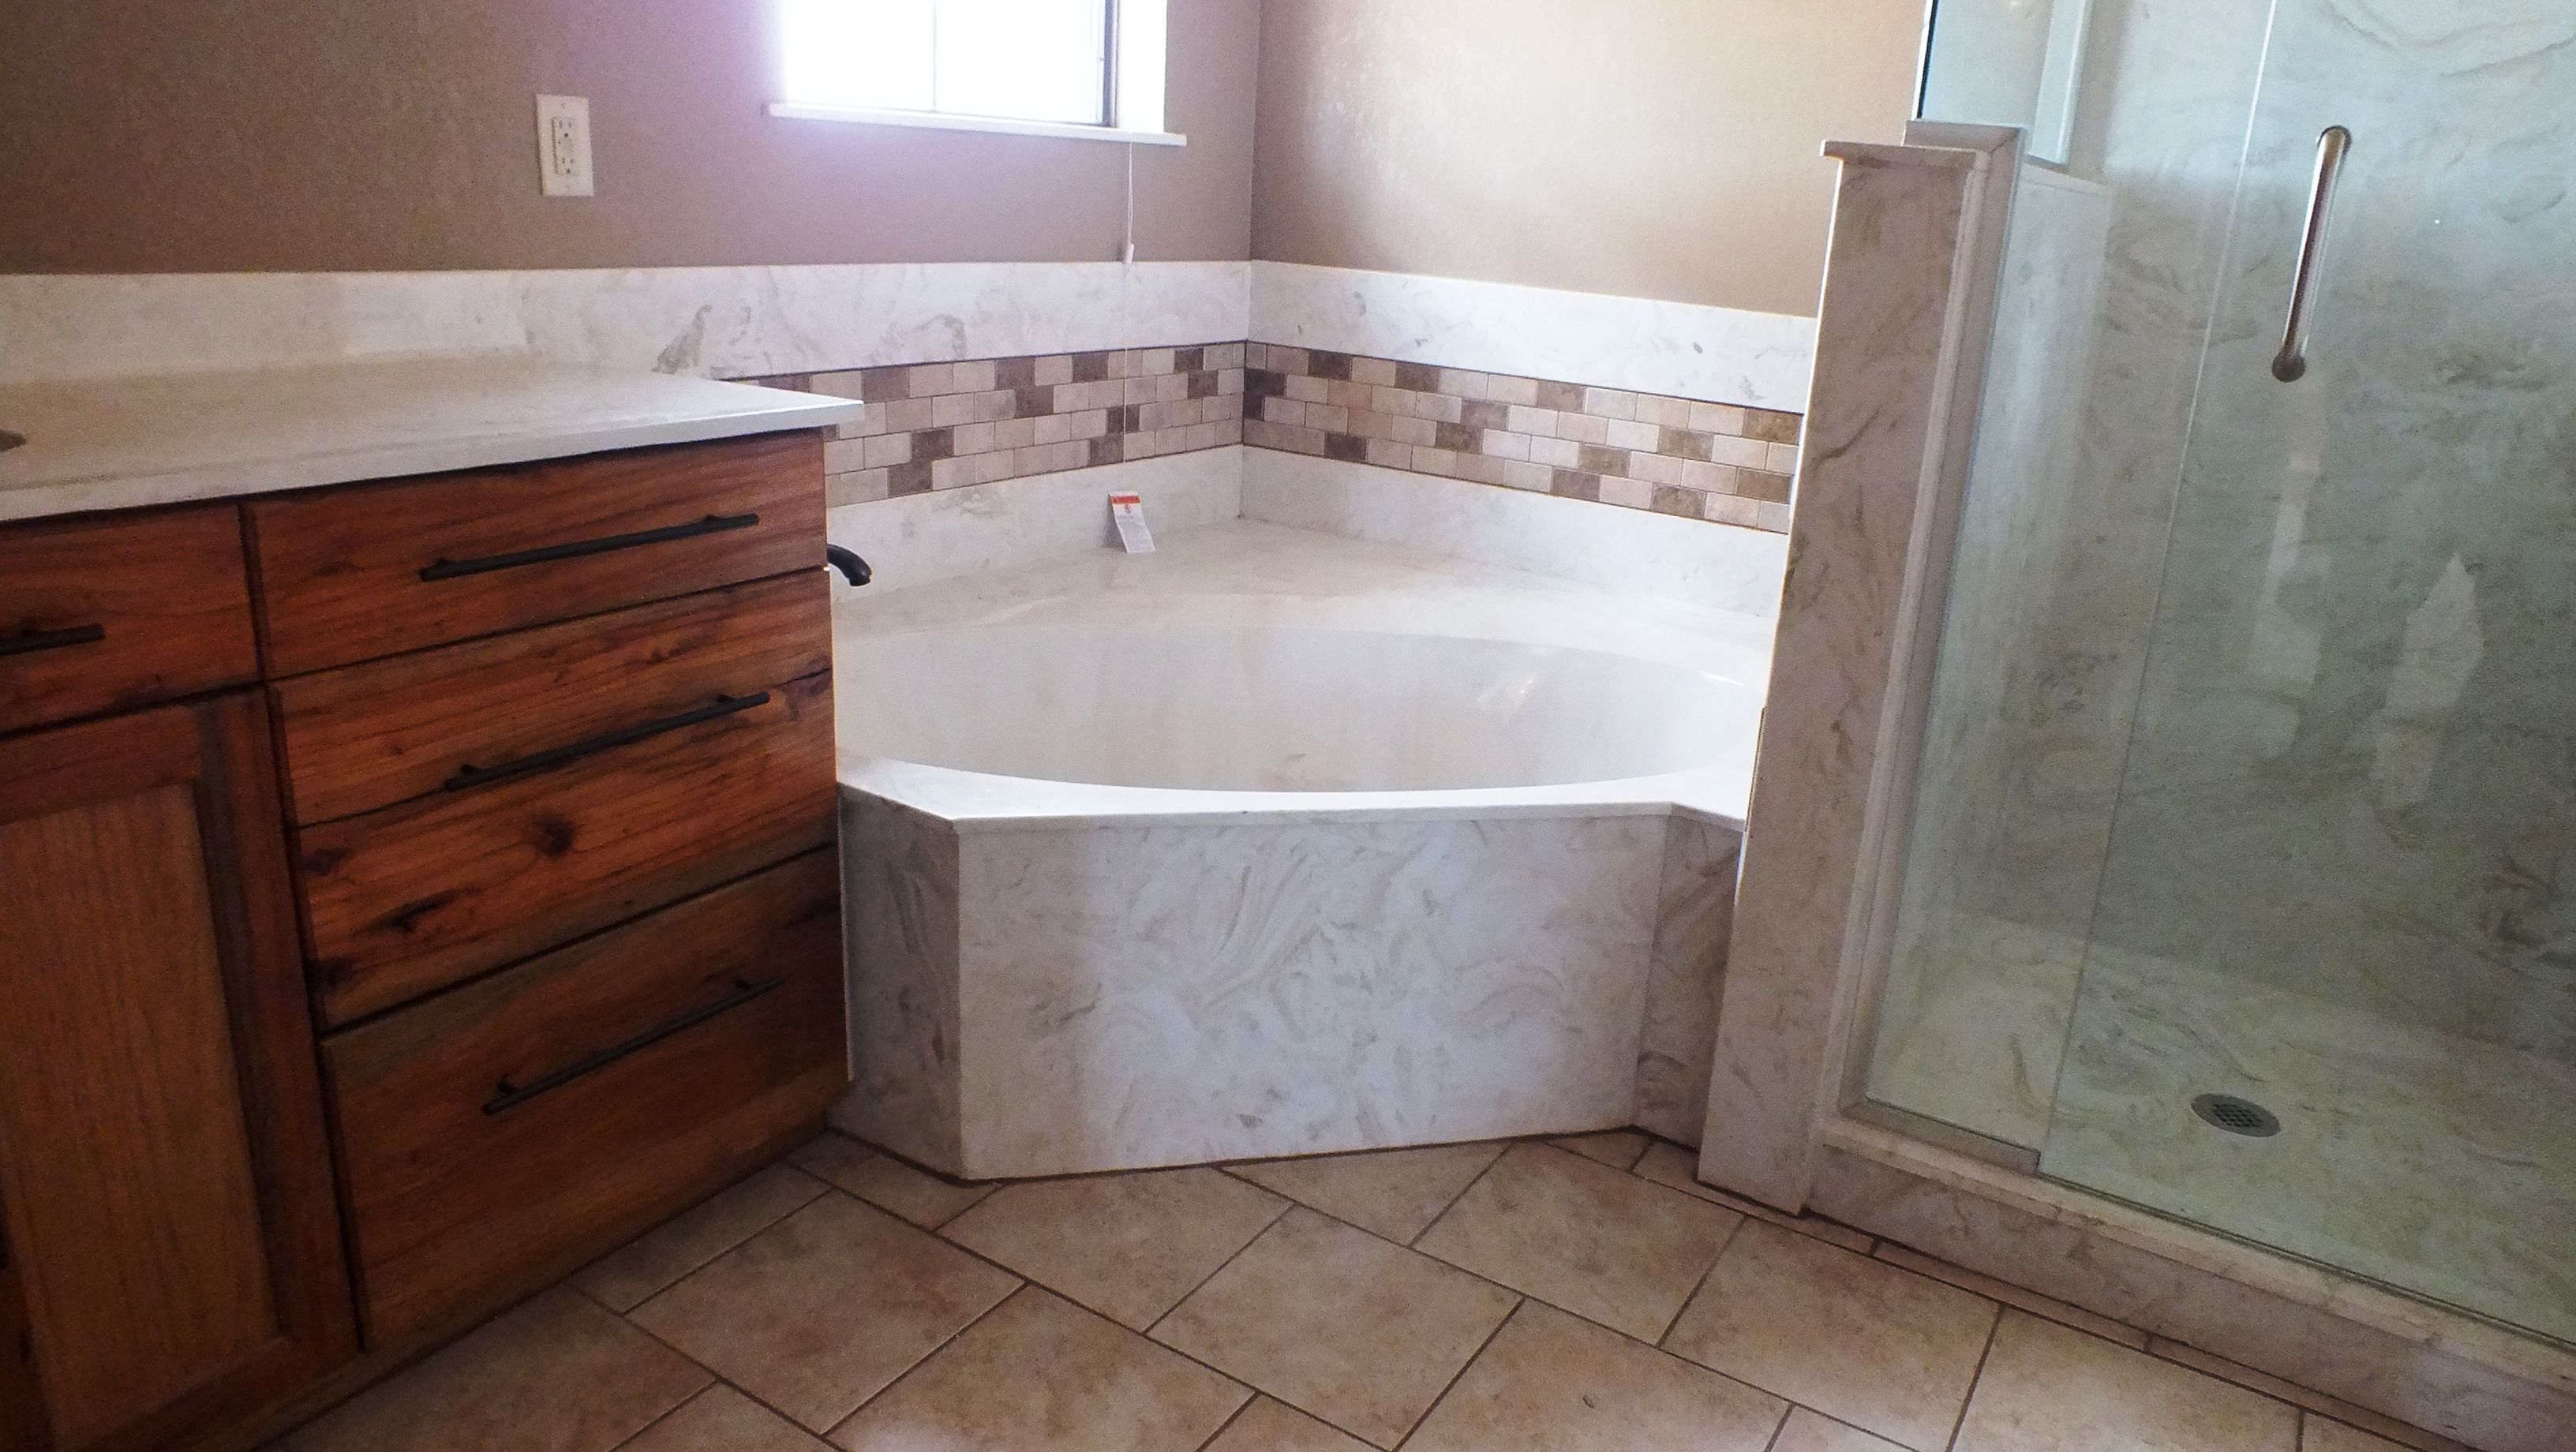 Our Custom Burnt Almond Corner Spa Tub With 6 Jets Heater Spa Pump Bubbler Our Spa Tub Is Finished With A Custom Ma Vanity Sink Custom Shower Marble Design